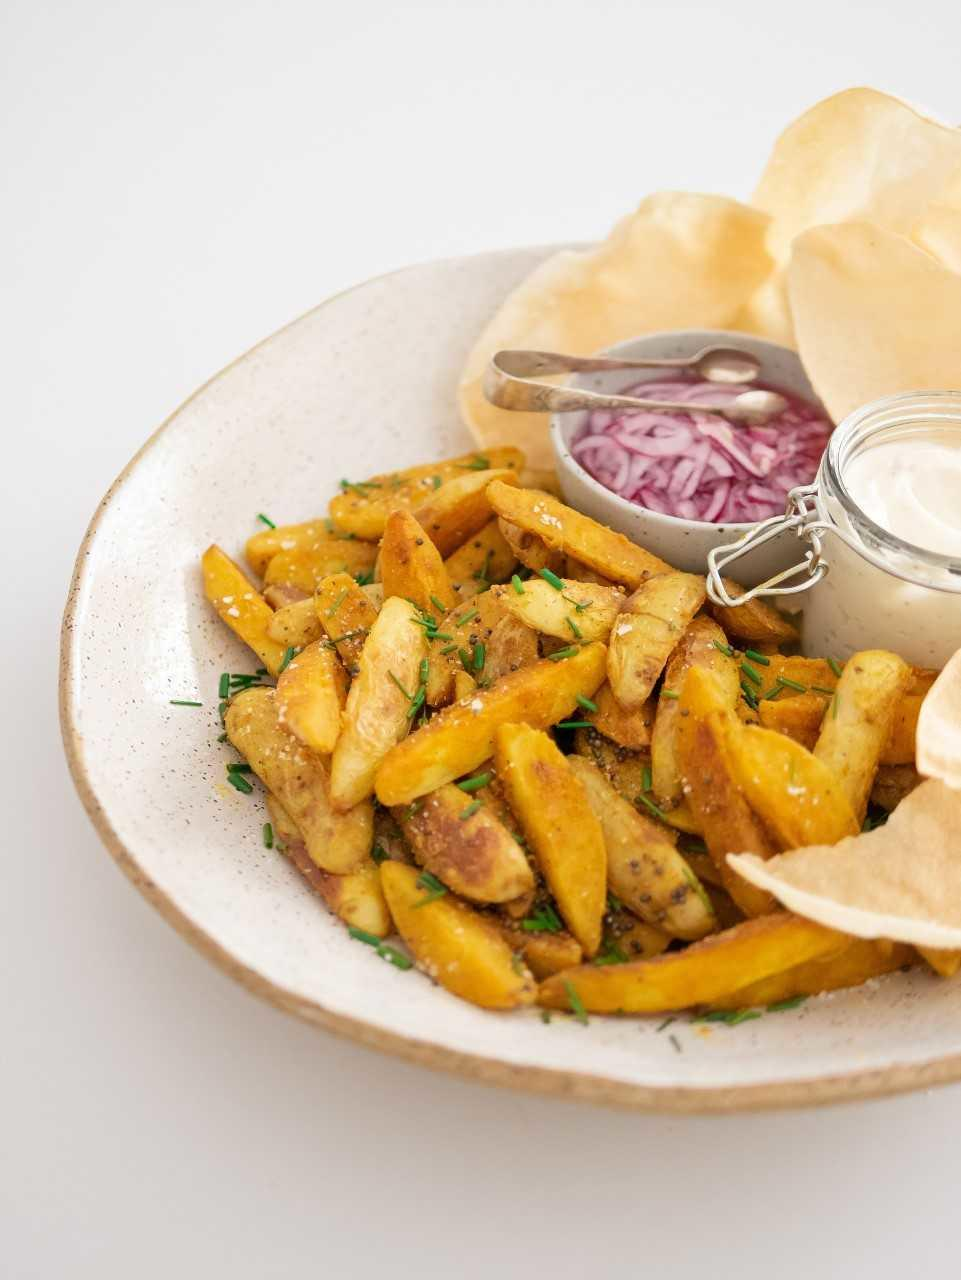 Bombay potatoes with a roasted garlic aioli, popadoms and pickled red onions